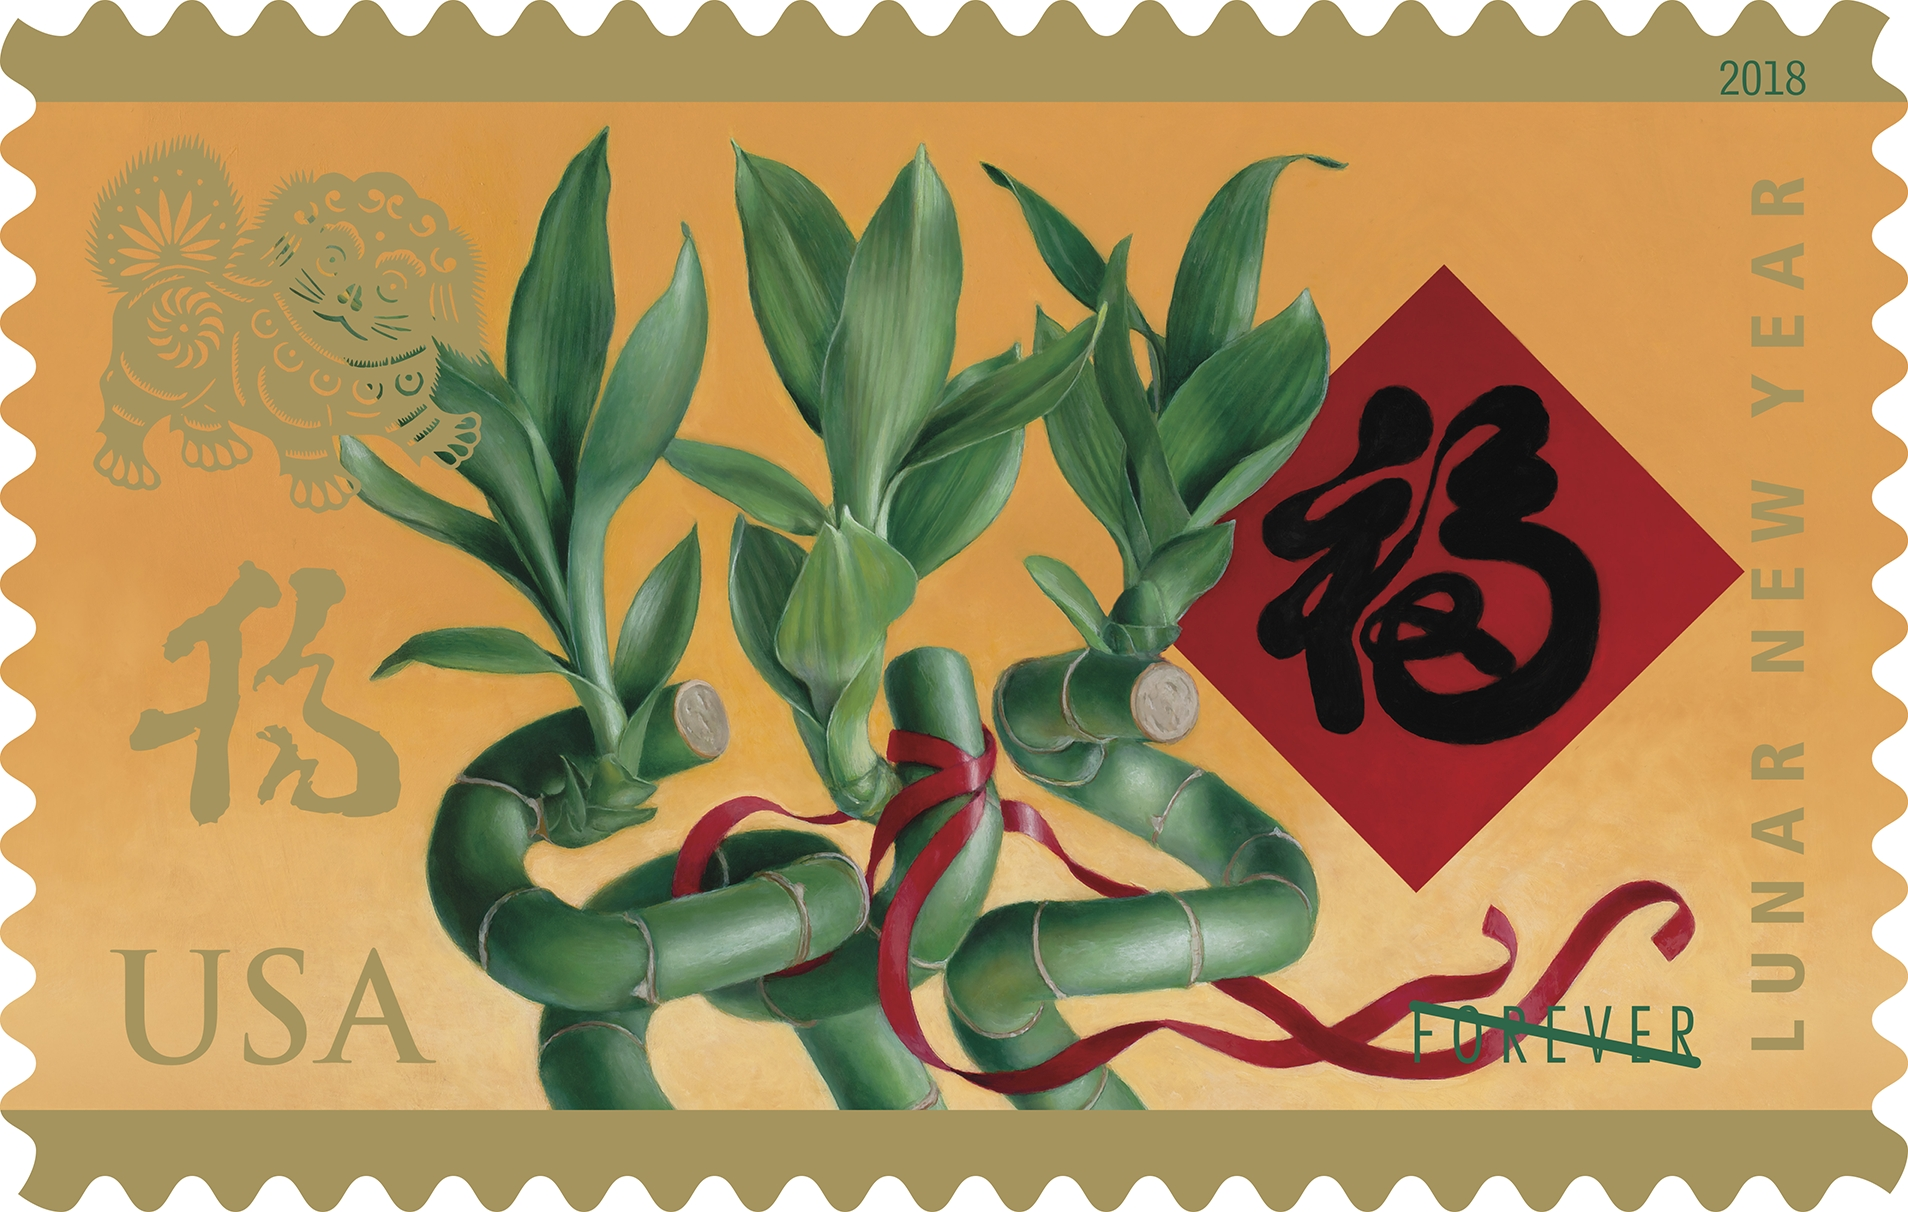 Year of the Dog (Celebrating Lunar New Year series): The Year of the Dog stamp is the 11th of 12 stamps in the Celebrating Lunar New Year series. The Year of the Dog begins Feb. 16, 2018, and ends Feb. 4, 2019.  (USPS)